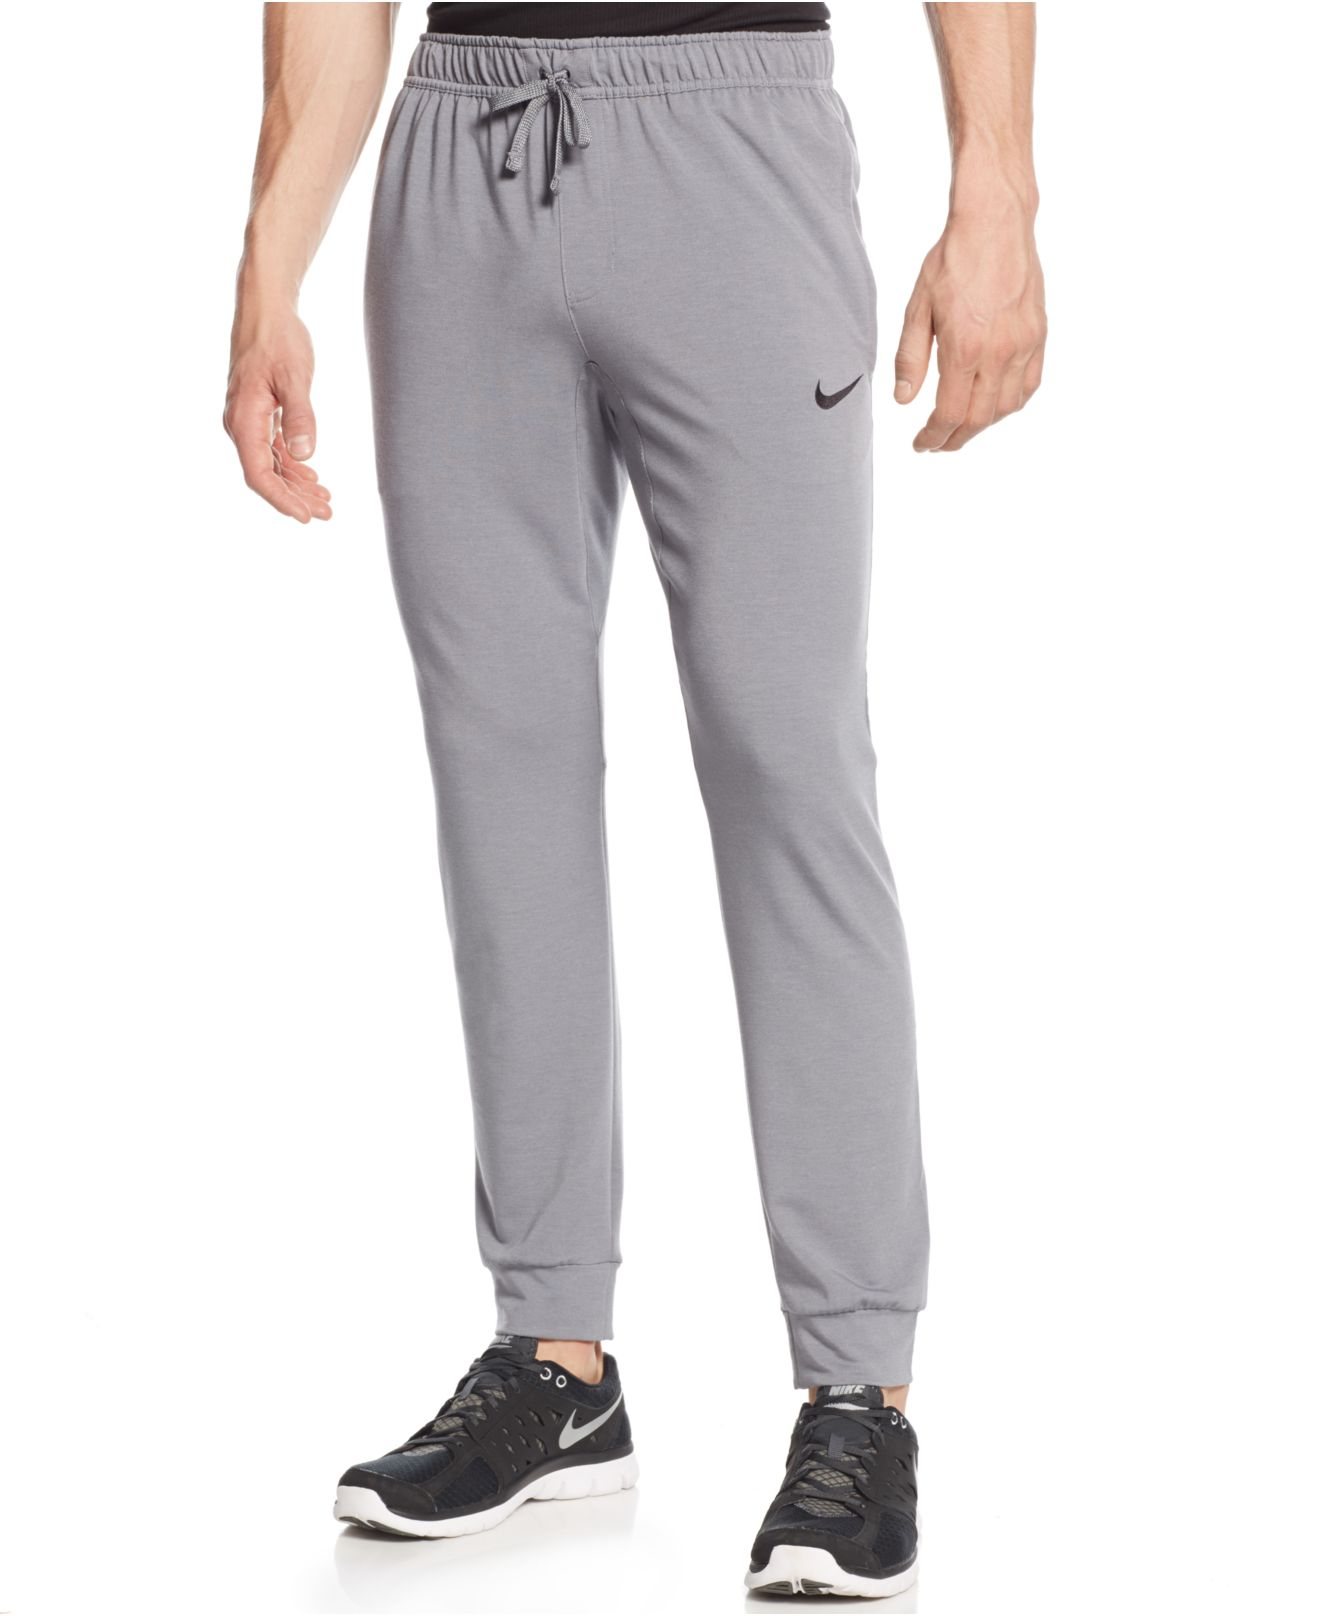 8cf96a5a7a05 Lyst - Nike Dri-fit Touch Fleece Joggers in Gray for Men